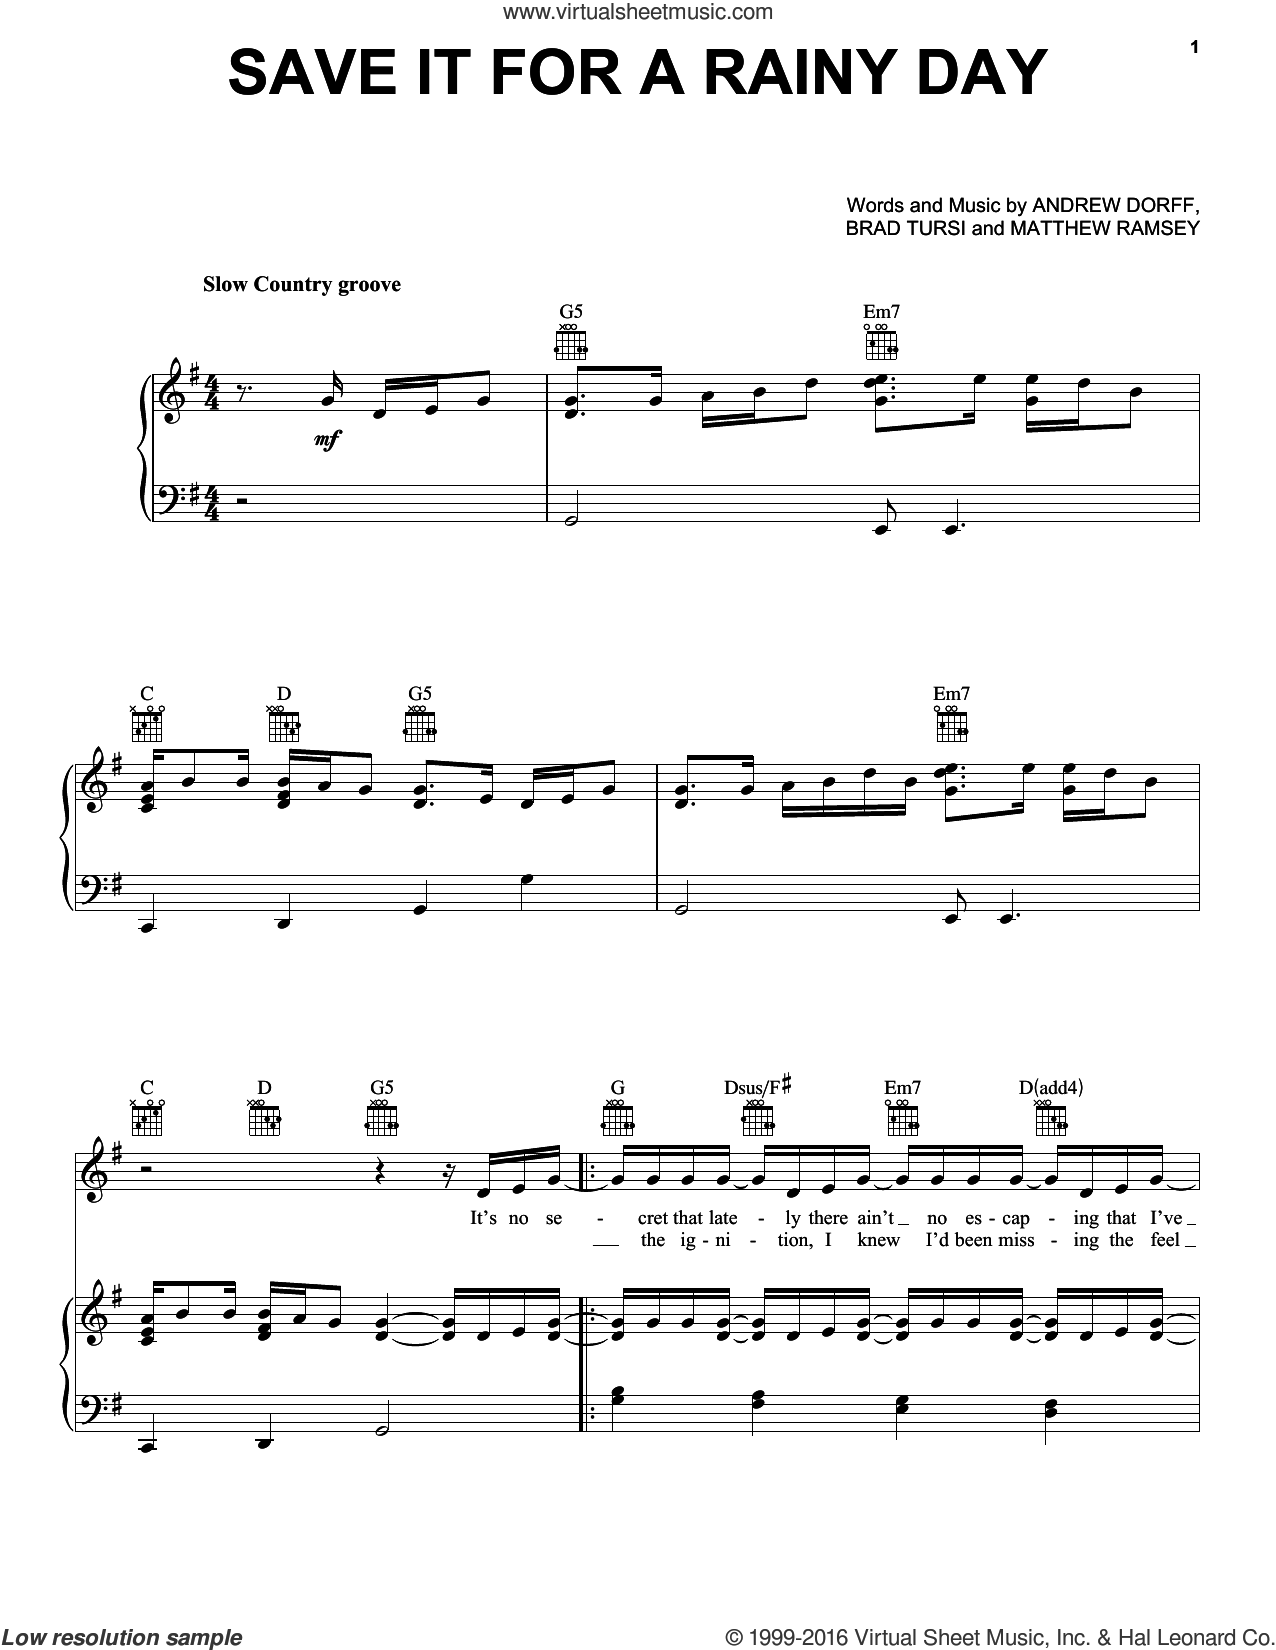 Save It For A Rainy Day sheet music for voice, piano or guitar by Kenny Chesney, Andrew Dorff, Brad Tursi and Matthew Ramsey, intermediate